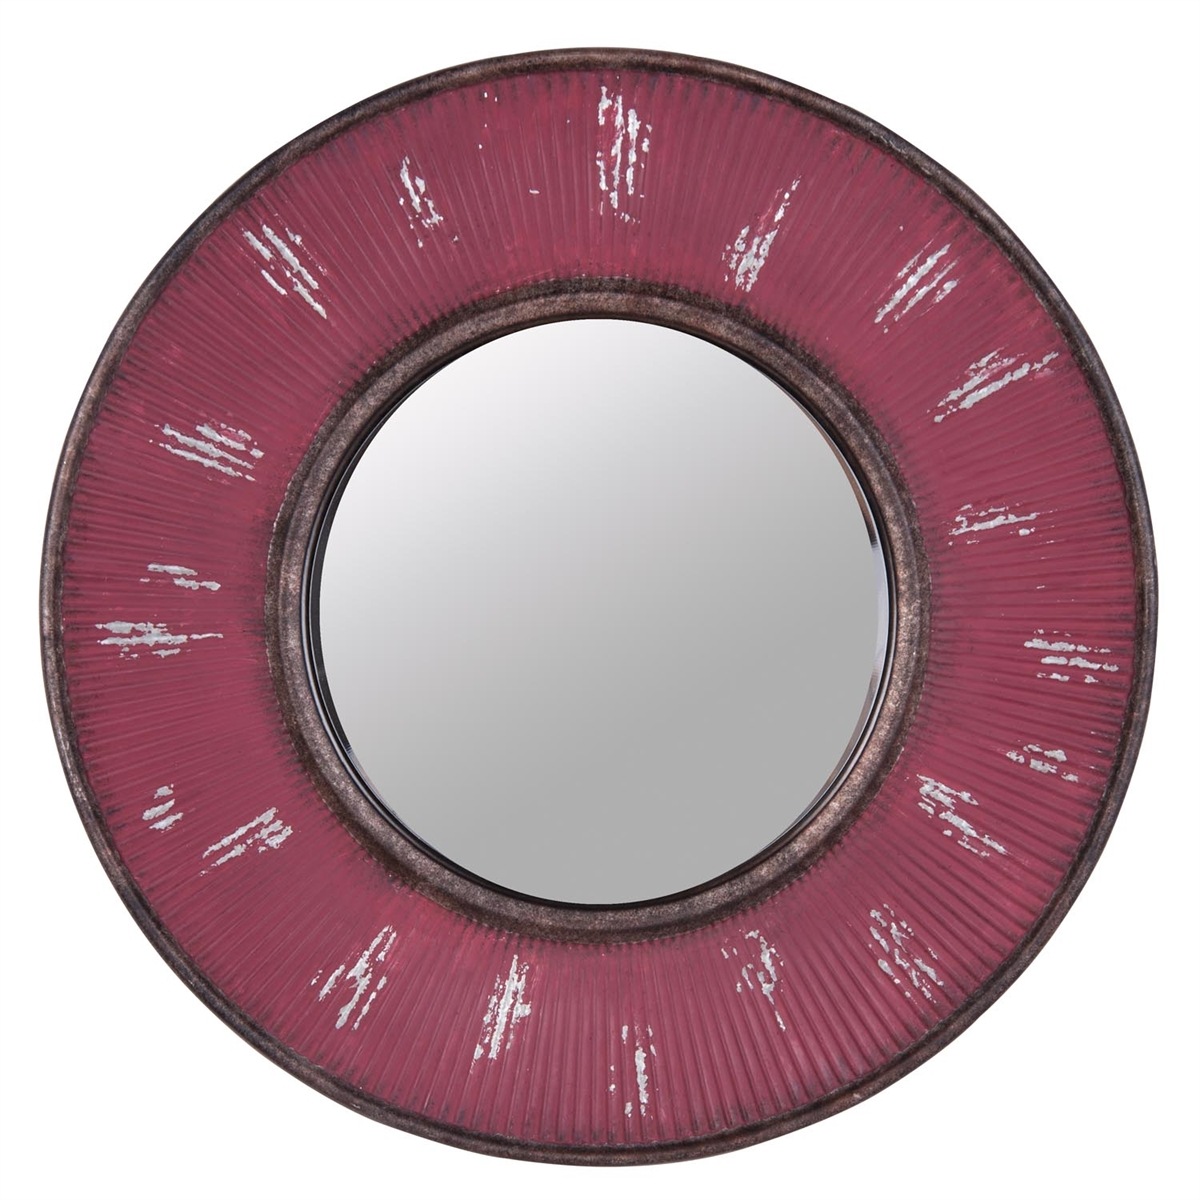 Sunburst Corrugated Mirror, Metal Decorative Mirror | Plum & Post